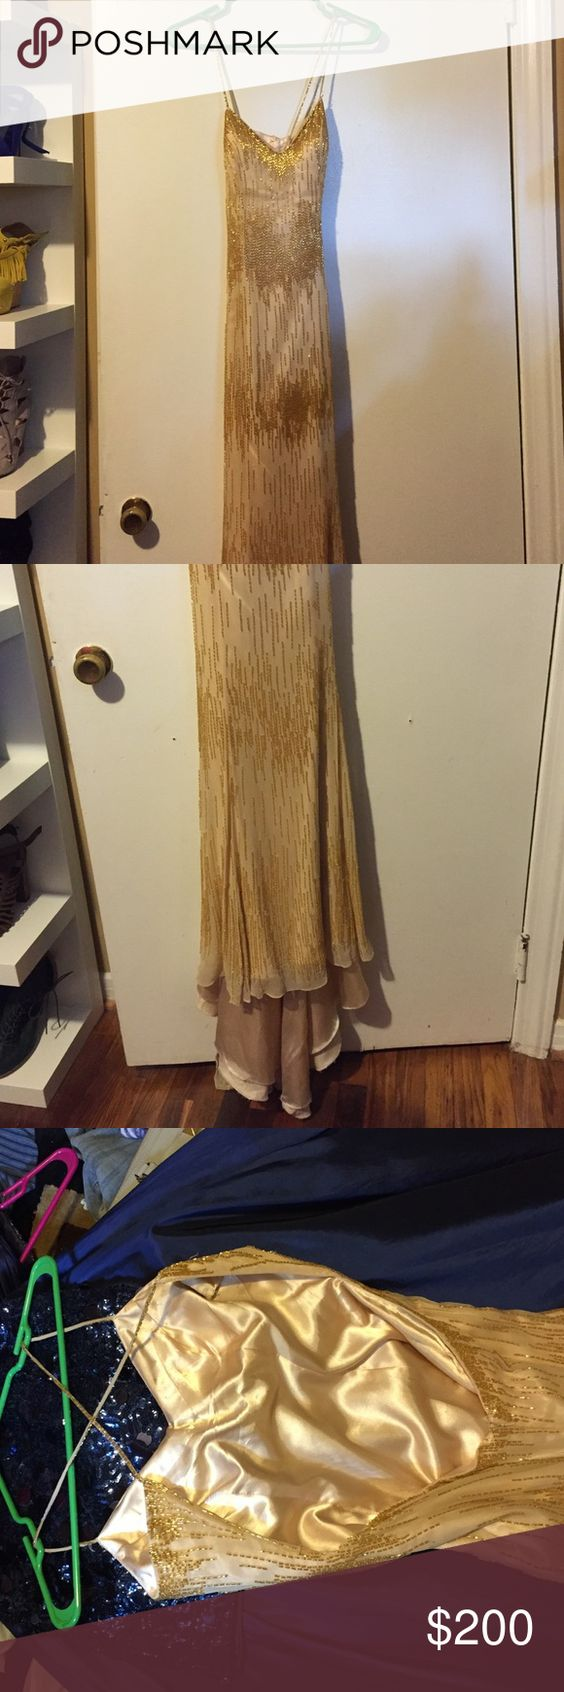 Prom Dress: Panoply Beautiful pale gold prom dress with lots of beading. Low, open back with criss-cross straps. Panoply, size 6. Worn once and in good condition. Panoply Dresses Prom